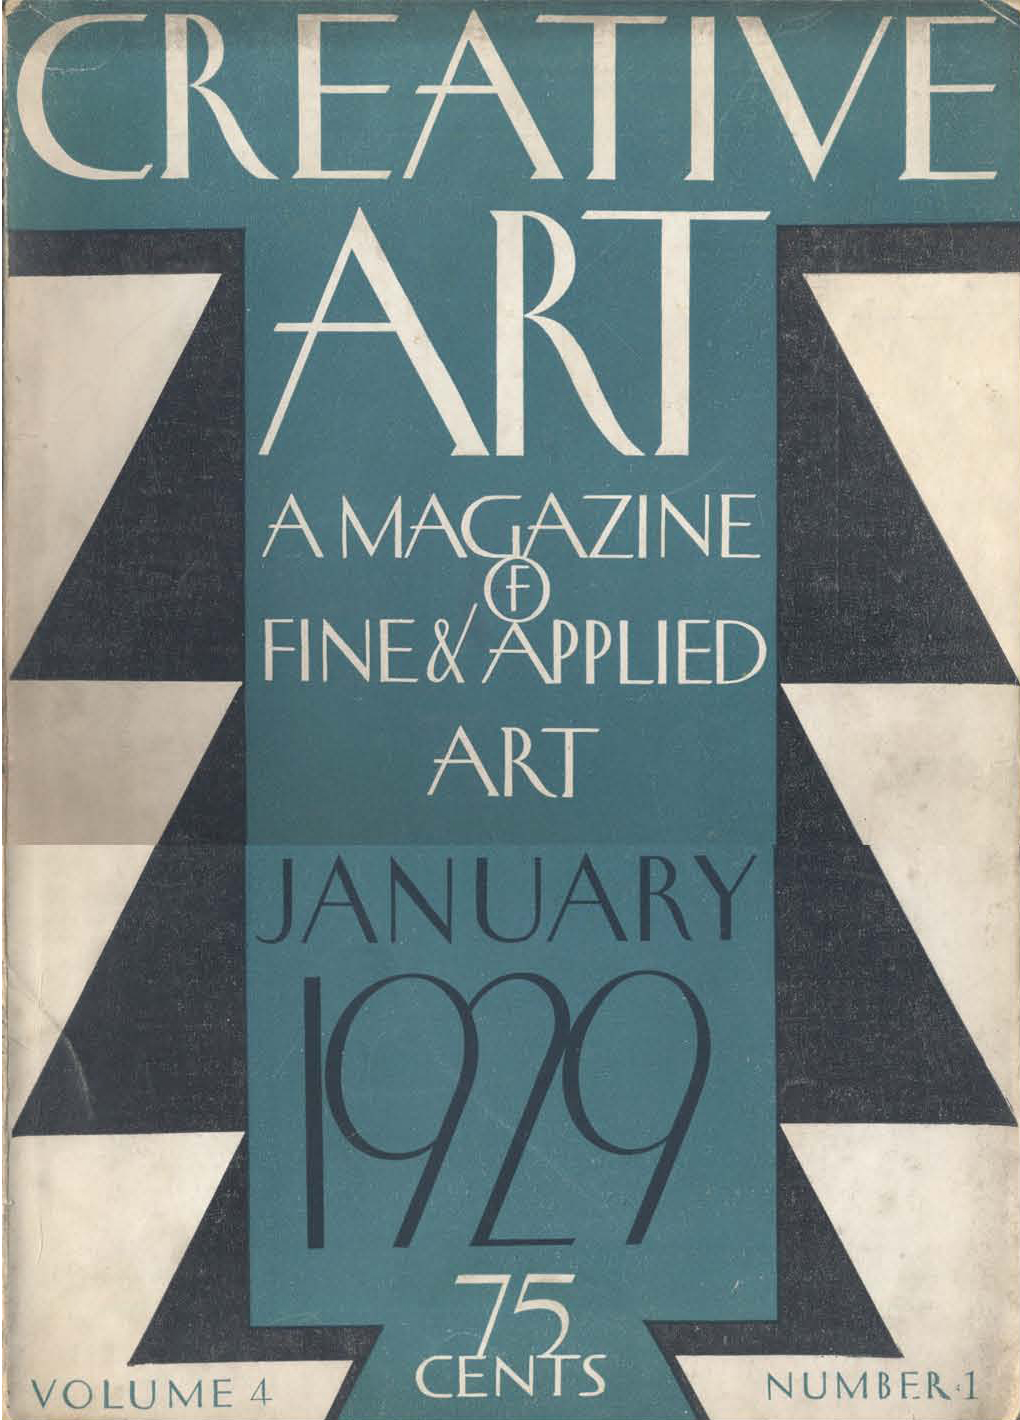 Creative Arts (January 1929). Cover design not credited.